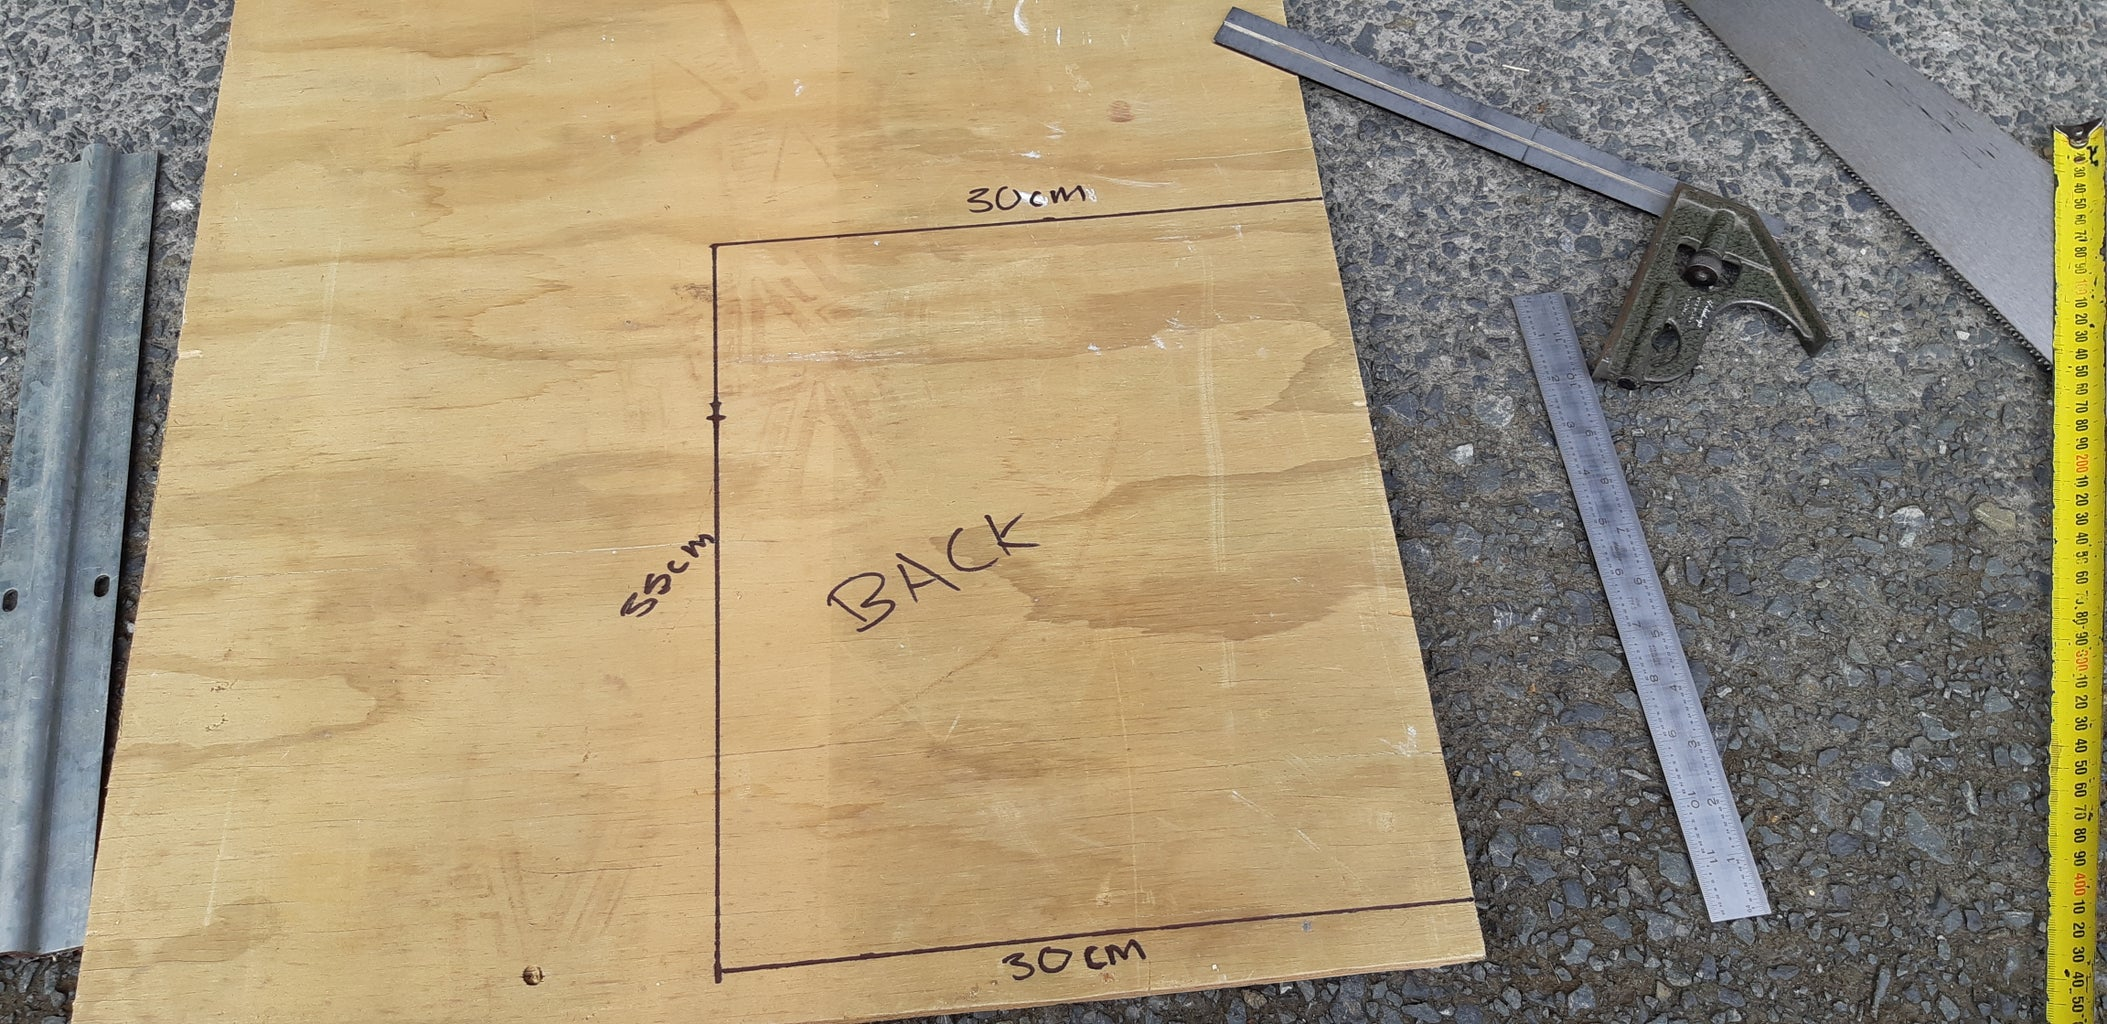 MEASURING AND CUTTING THE PLYWOOD